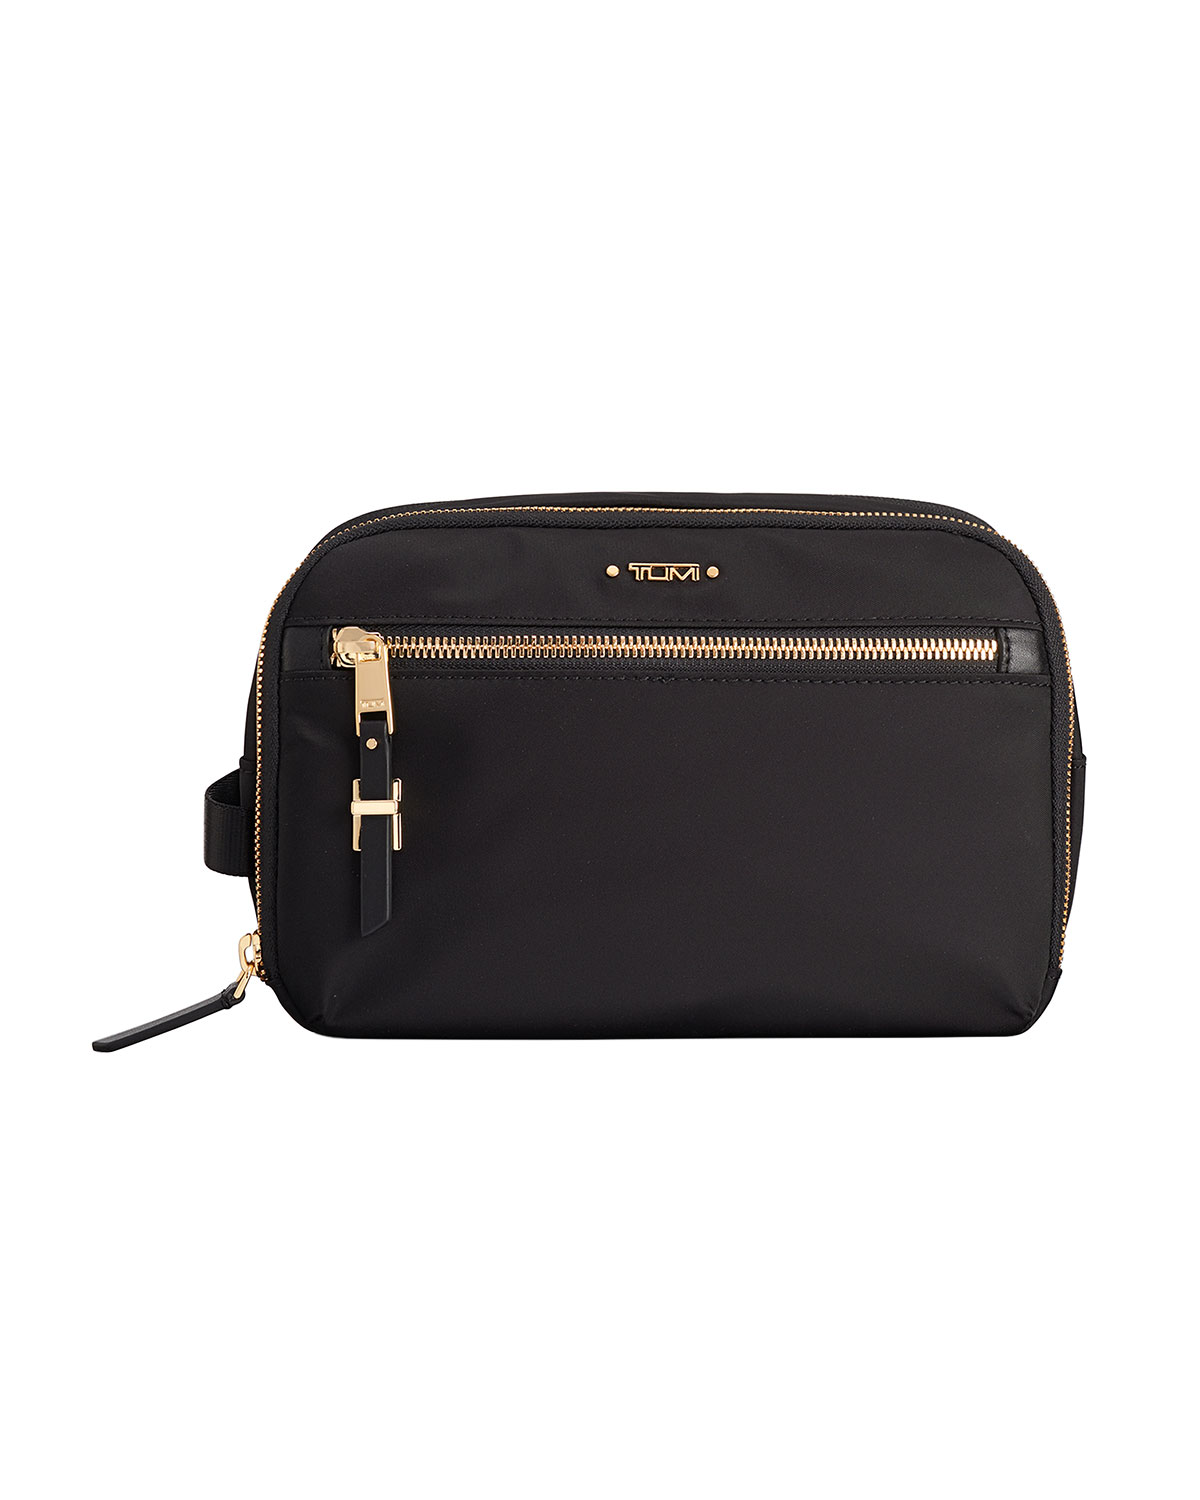 d84b8a33d2 TUMI Erie Double-Zip Cosmetic Bag